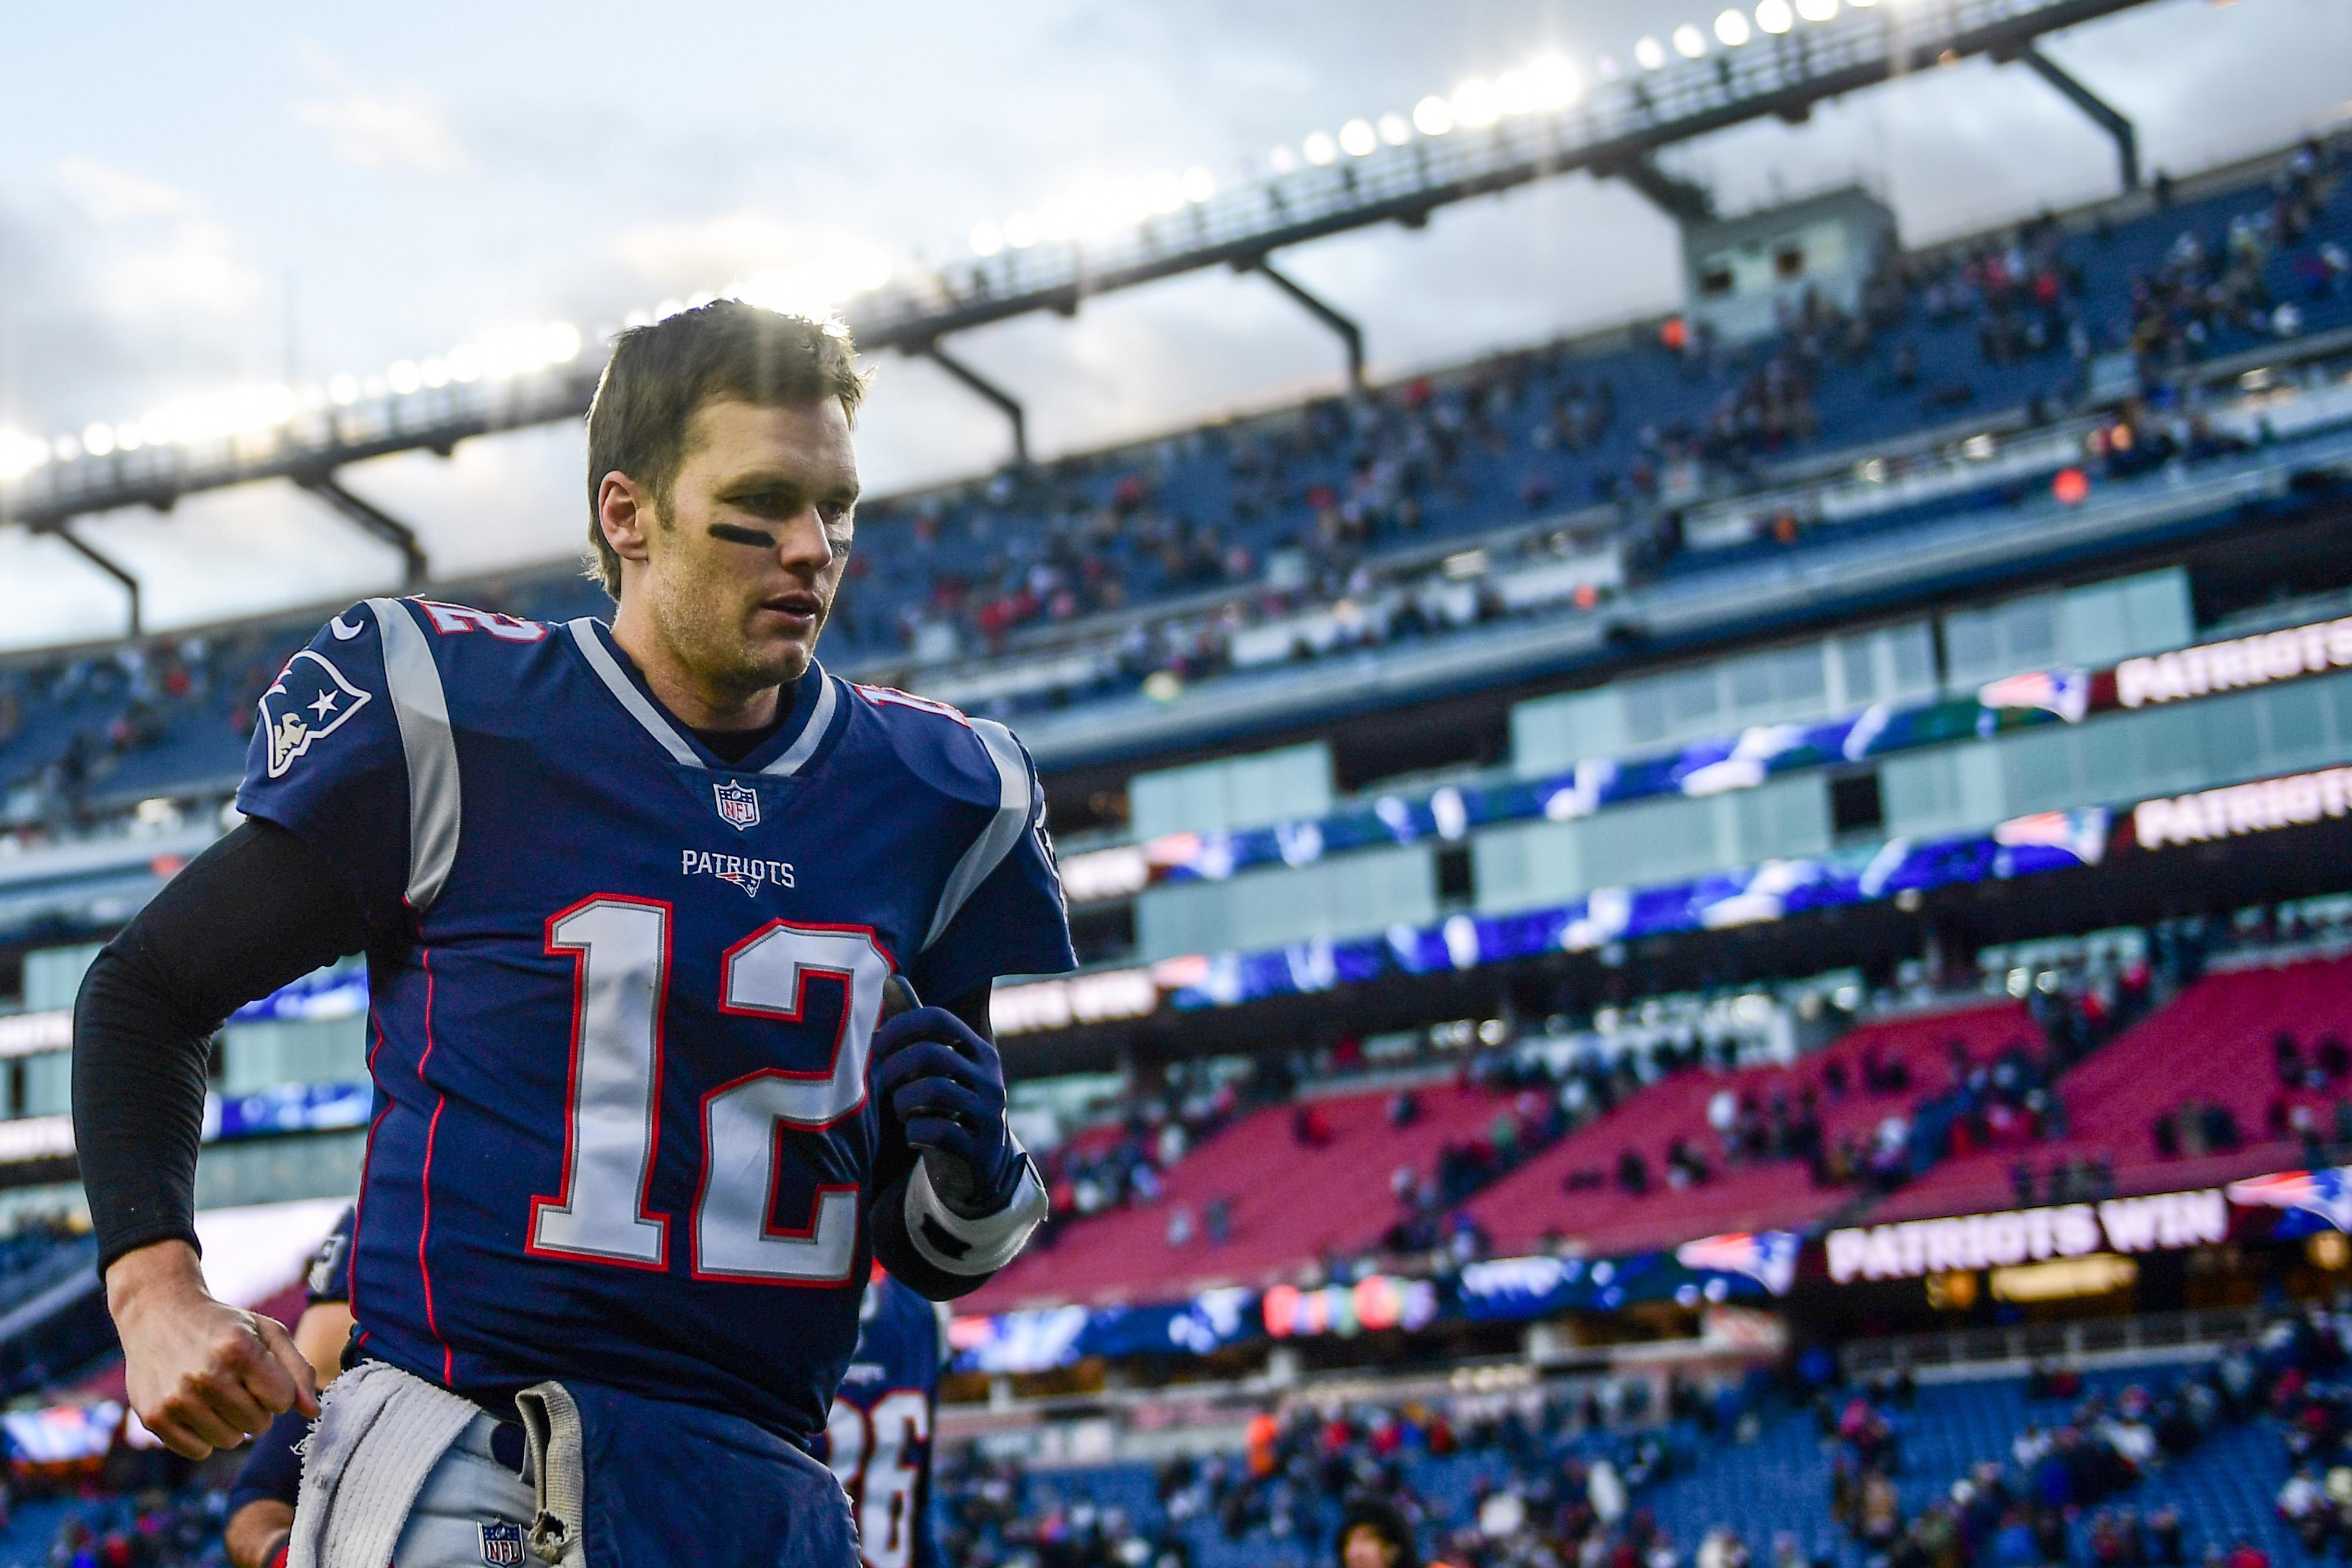 FOXBOROUGH, MASSACHUSETTS - DECEMBER 30: Tom Brady #12 of the New England Patriots runs off the field after a game against the New York Jets at Gillette Stadium on December 30, 2018 in Foxborough, Massachusetts. (Photo by Billie Weiss/Getty Images)